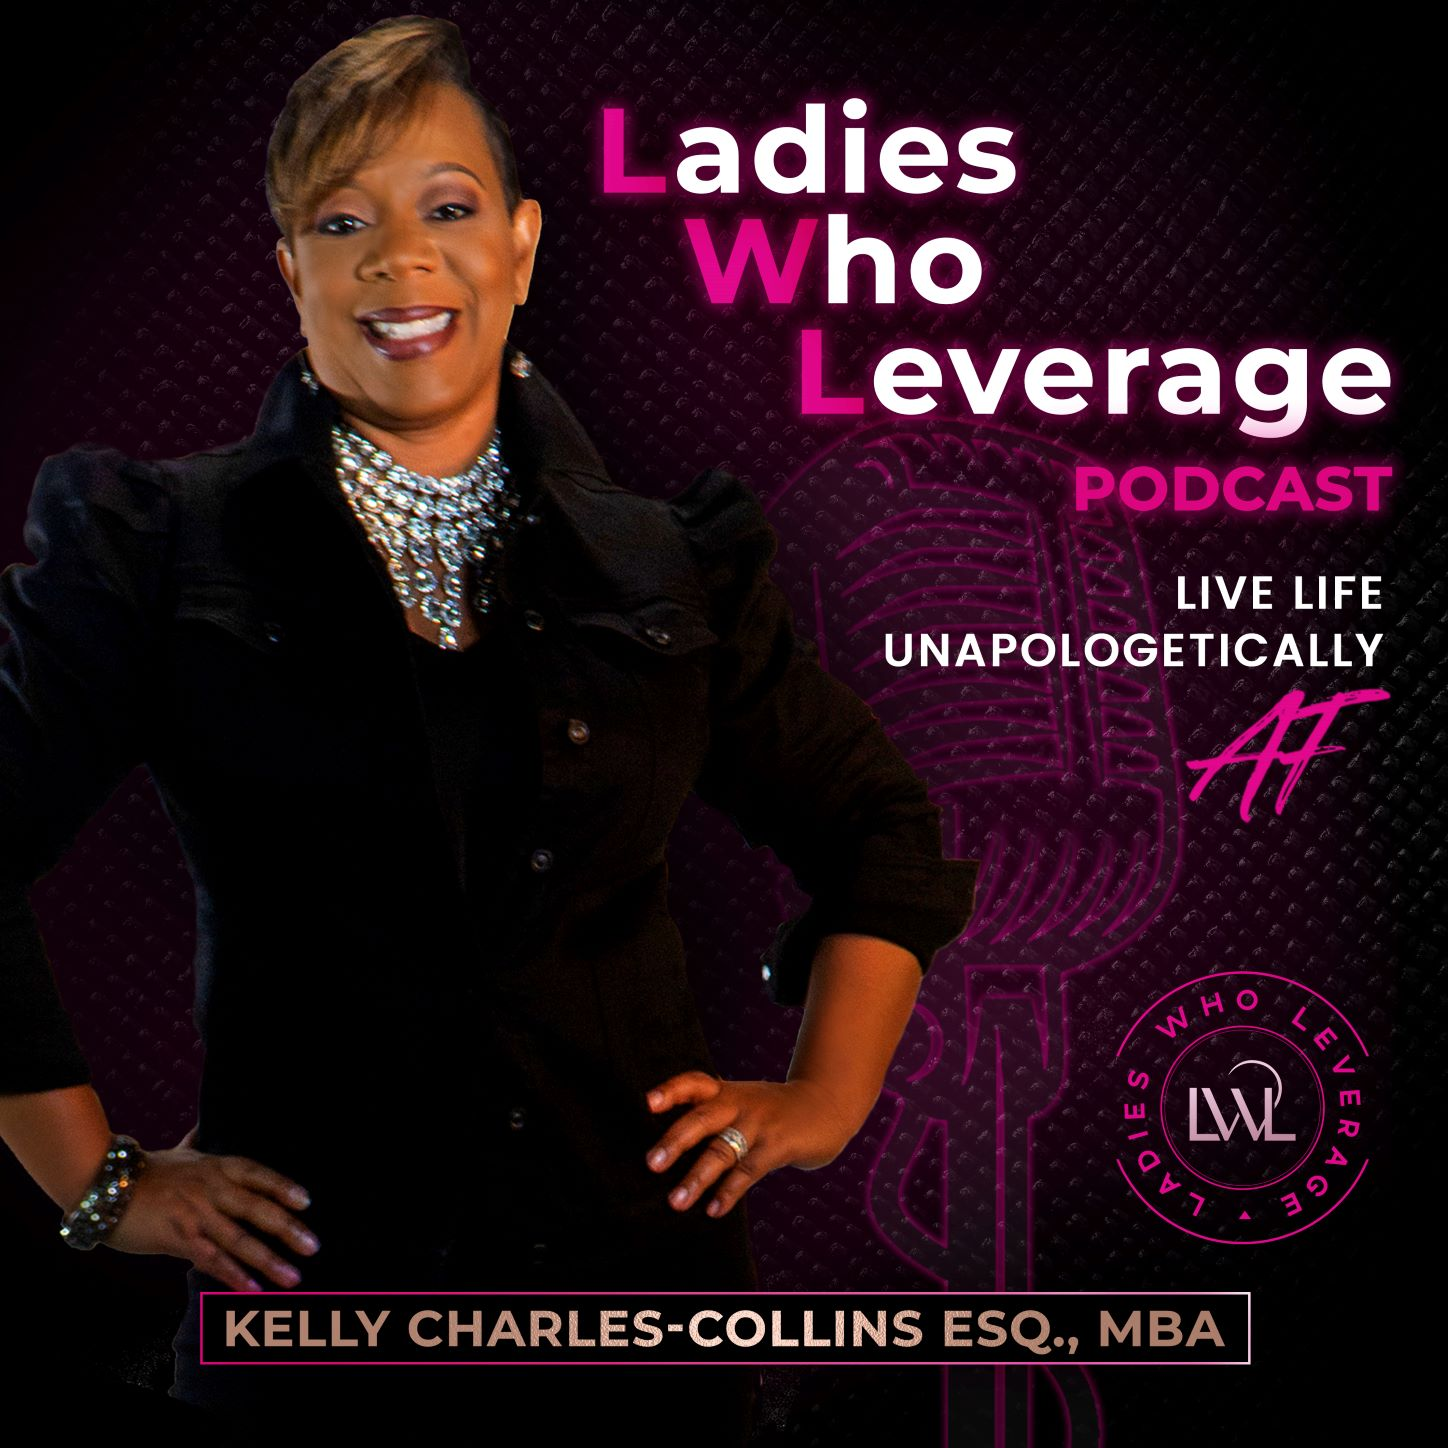 Show artwork for Ladies Who Leverage - Kelly Charles-Collins